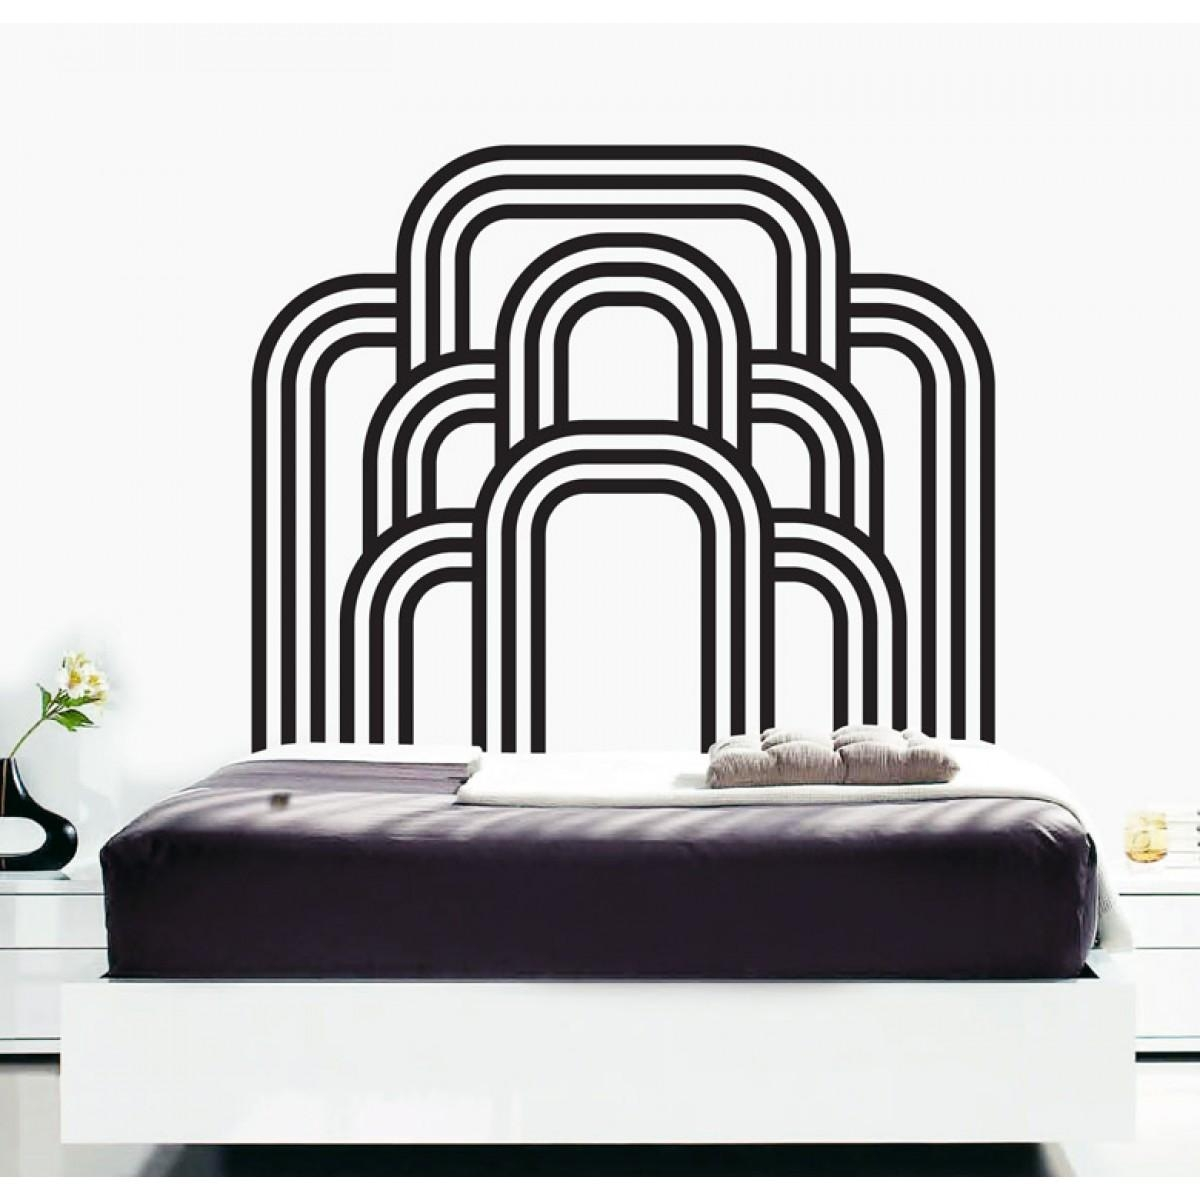 Wall Decals – Thewonderwalls® | Bedroom Art Deco Wall Stickers Pertaining To Art Deco Wall Decals (View 10 of 20)